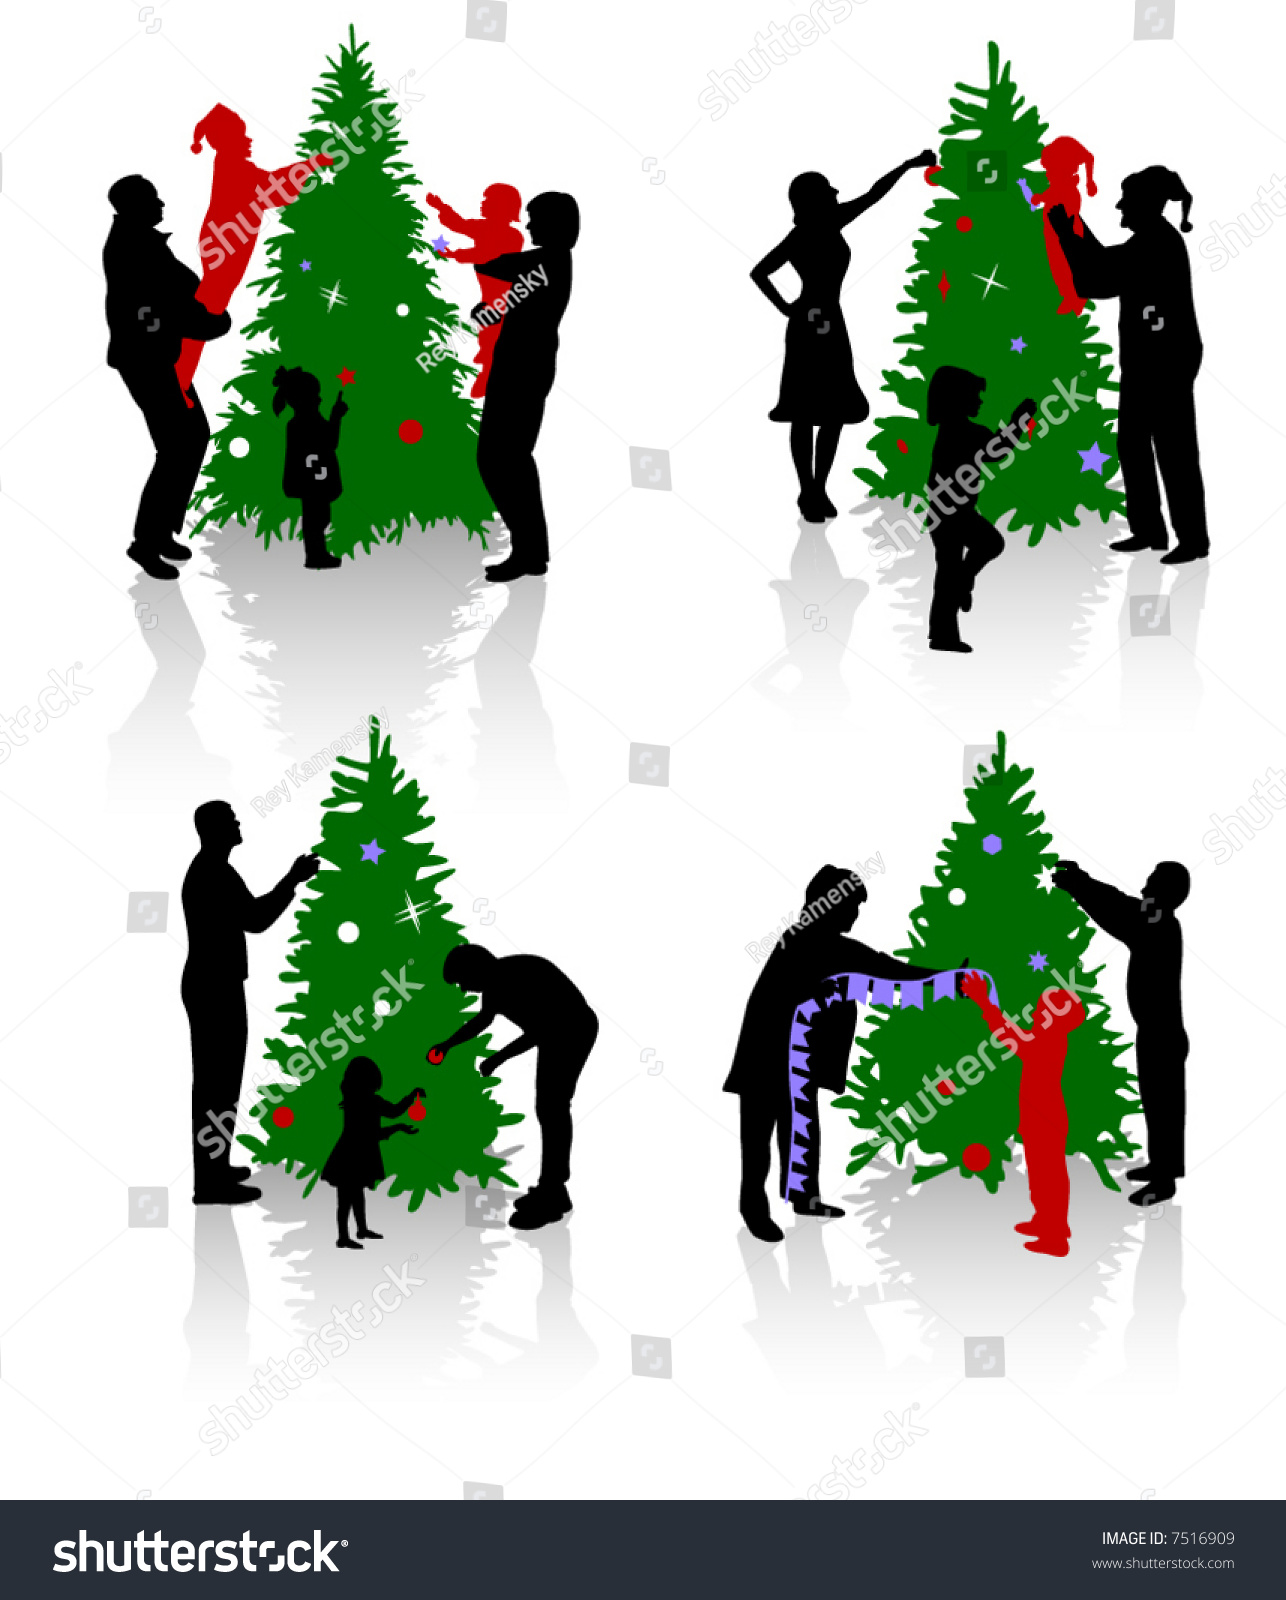 people decorating a christmas tree - People Decorating A Christmas Tree